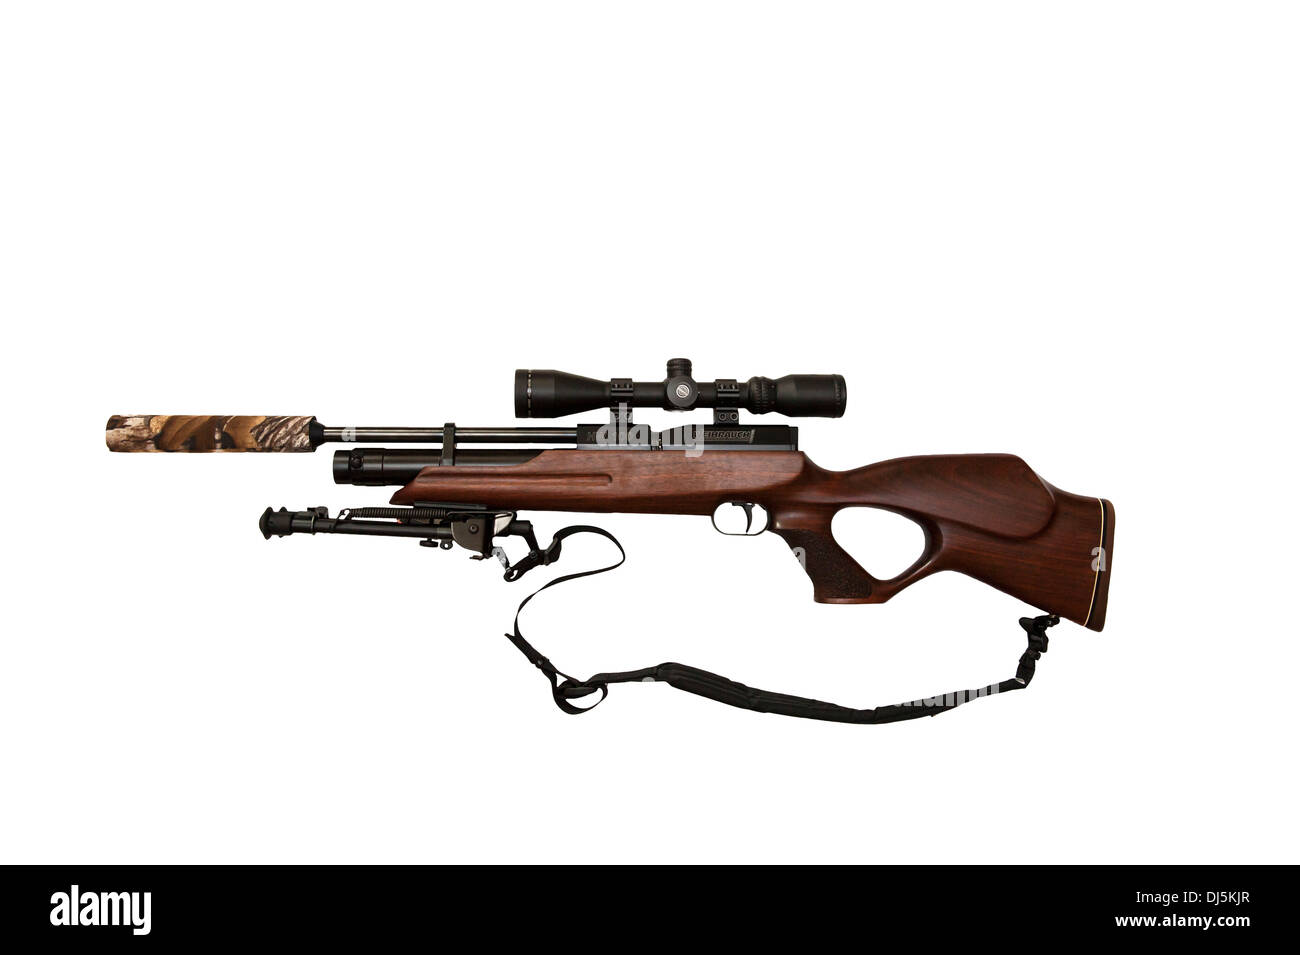 A Weihrauch HW 100 PCP pre-charged pneumatic air rifle with telescopic sight and bipod mounted on it on a white background - Stock Image